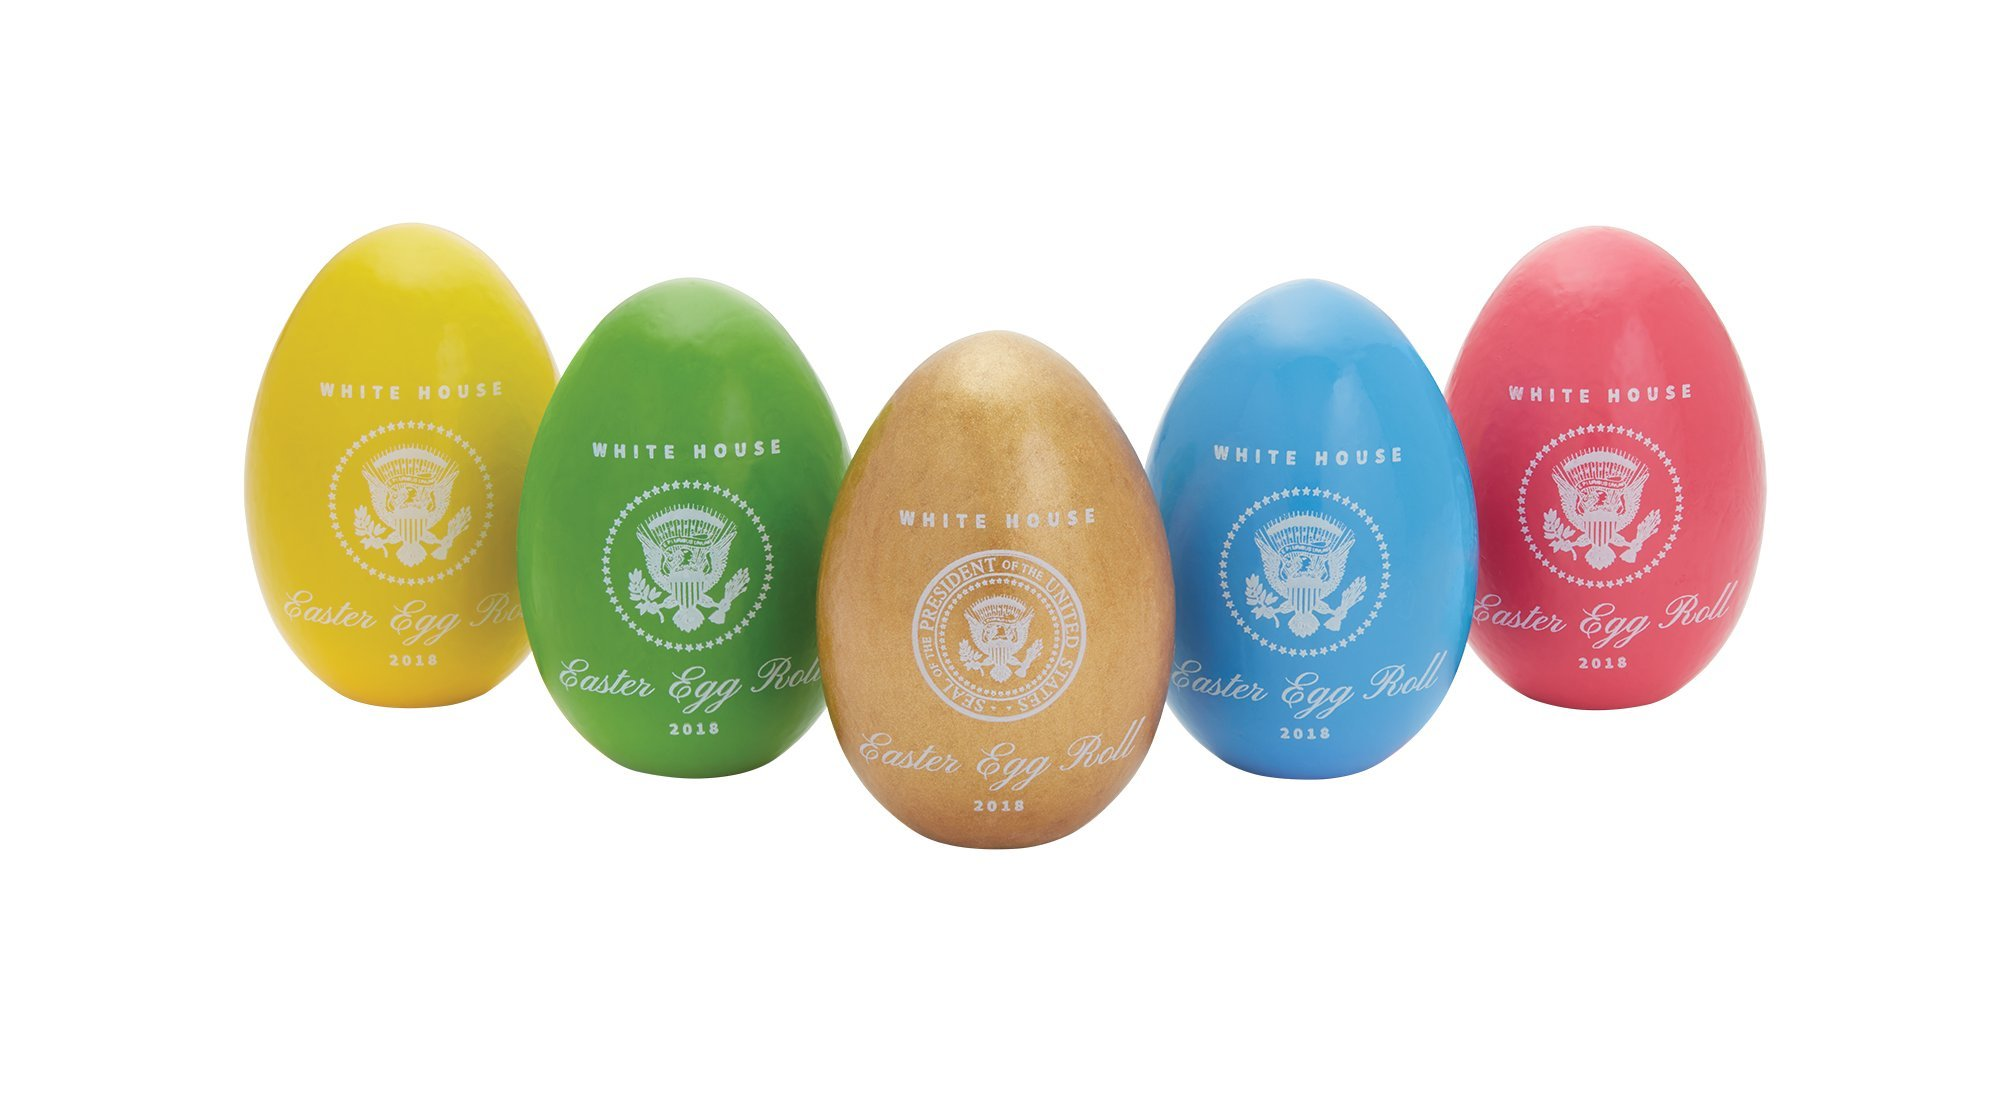 Official 2018 White House Easter Egg Set